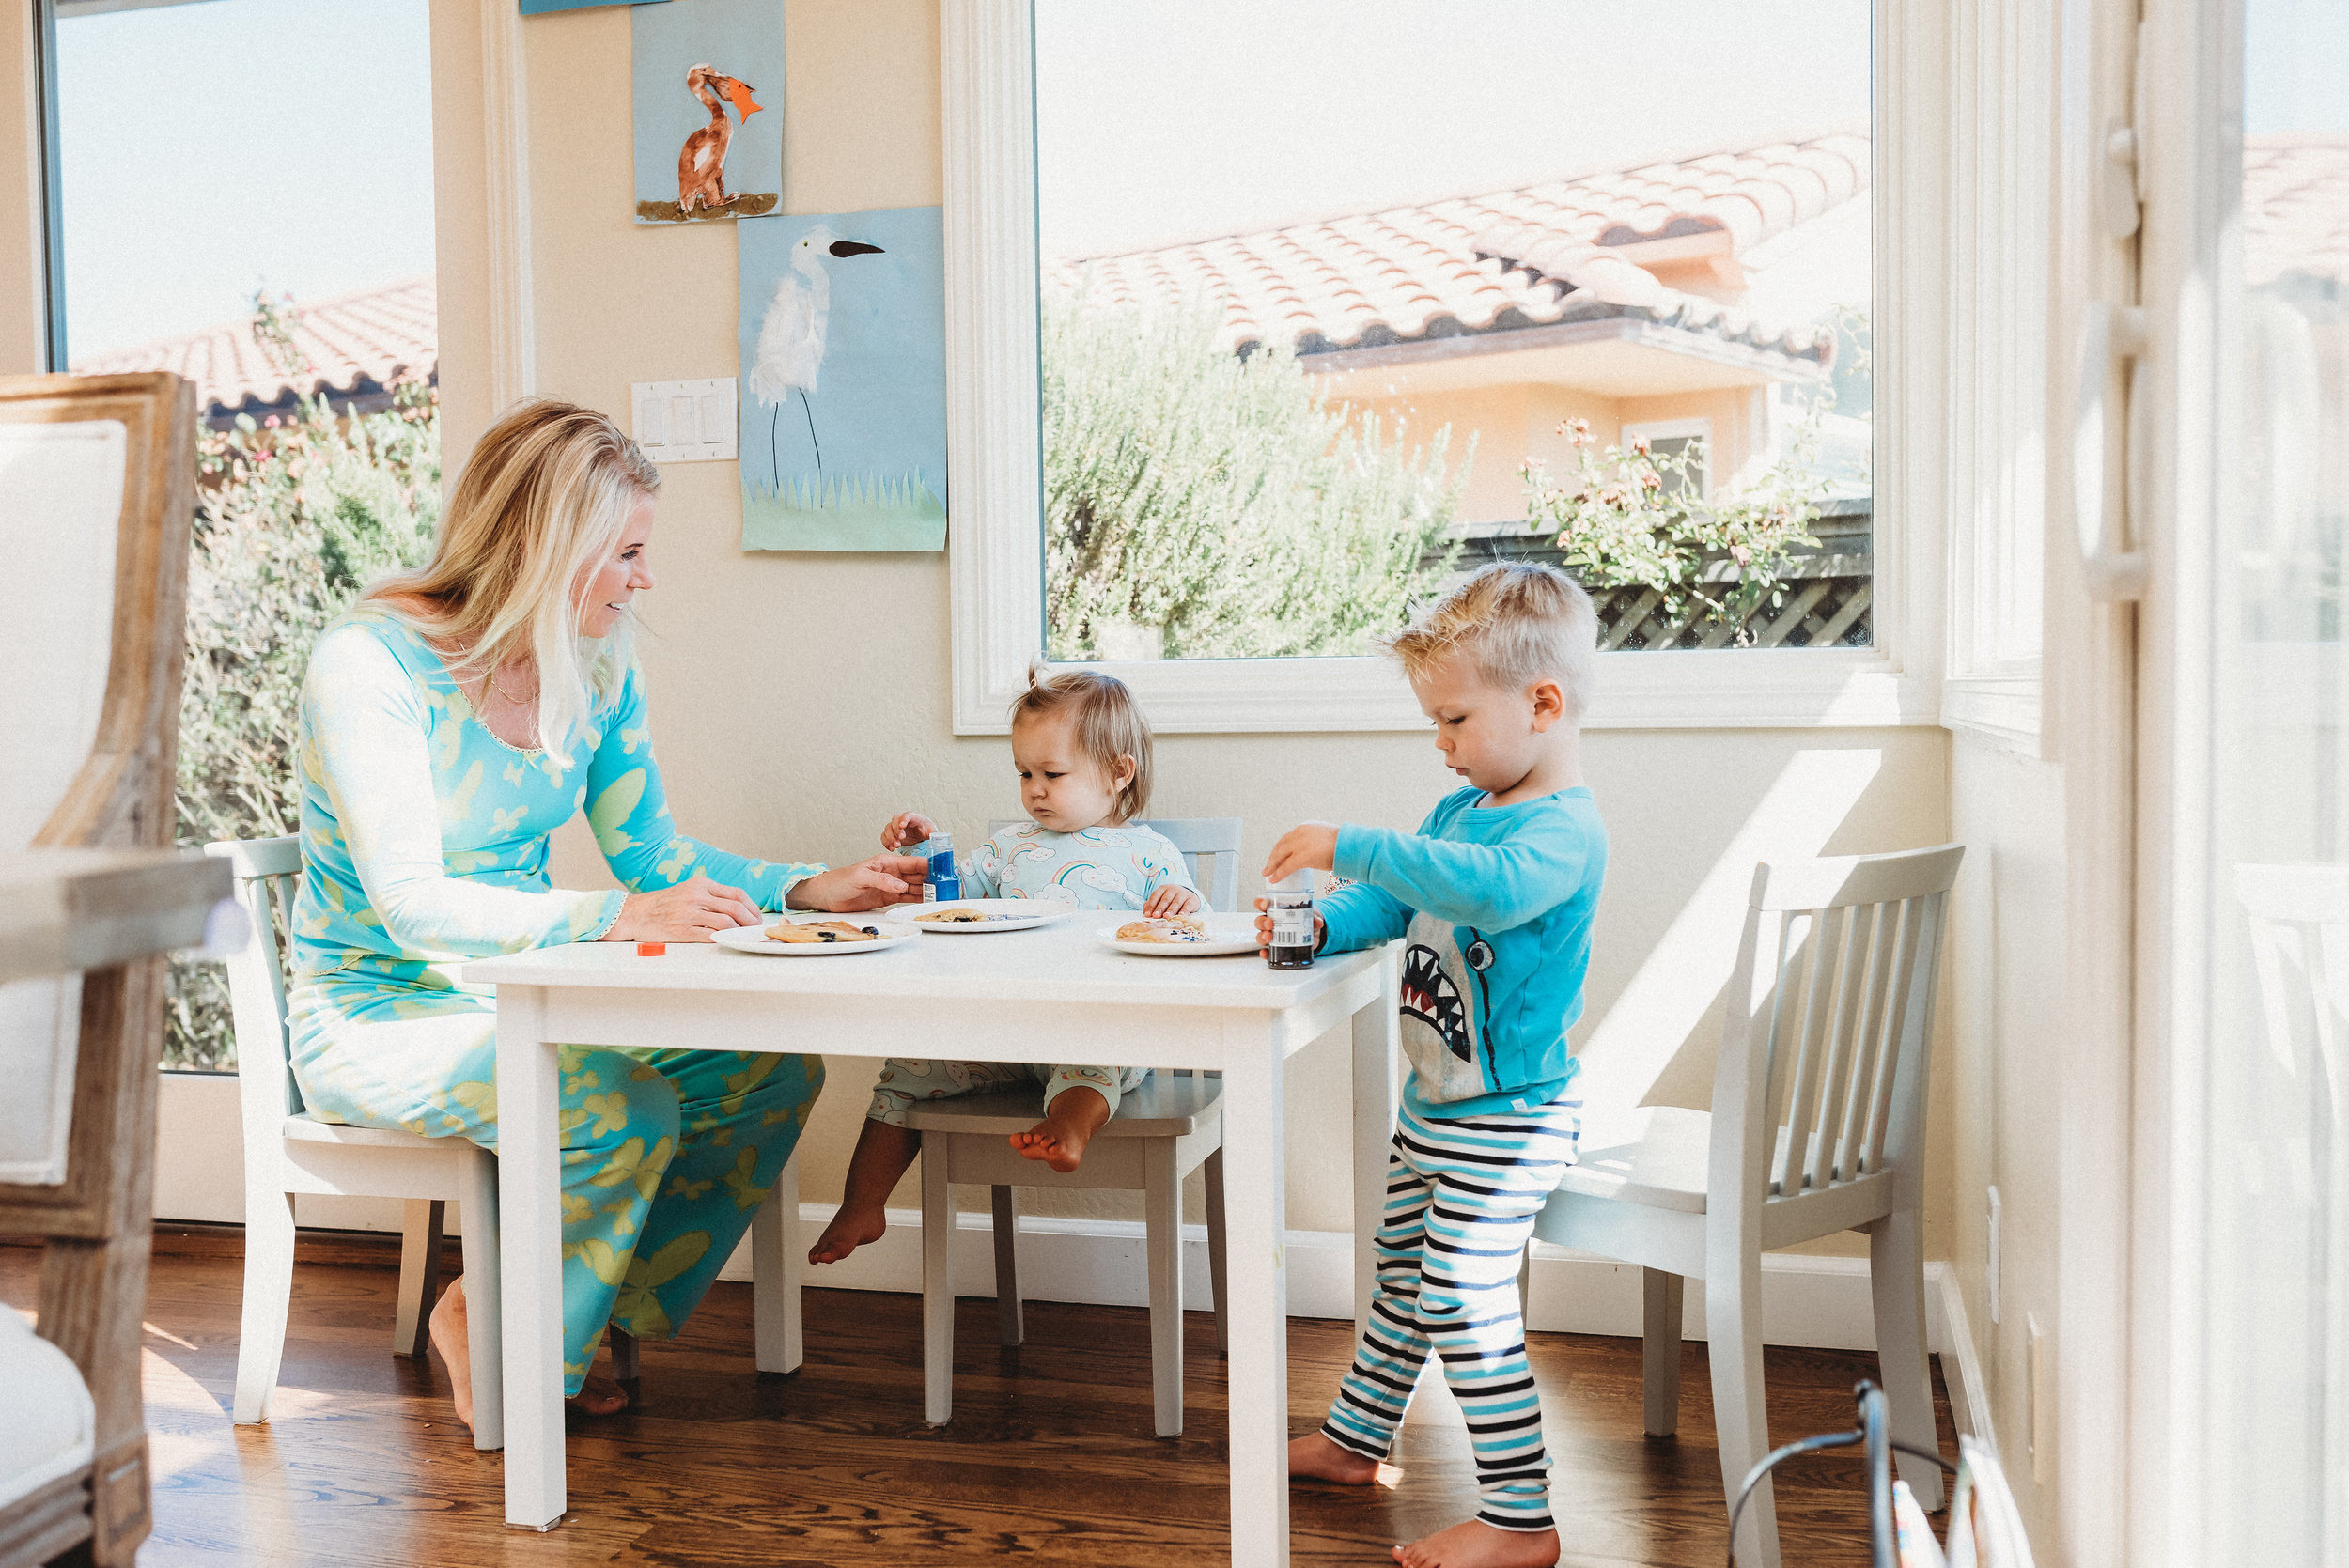 family pancakes morning routine mom of two toddlers pj mornings family time quality time31.jpg